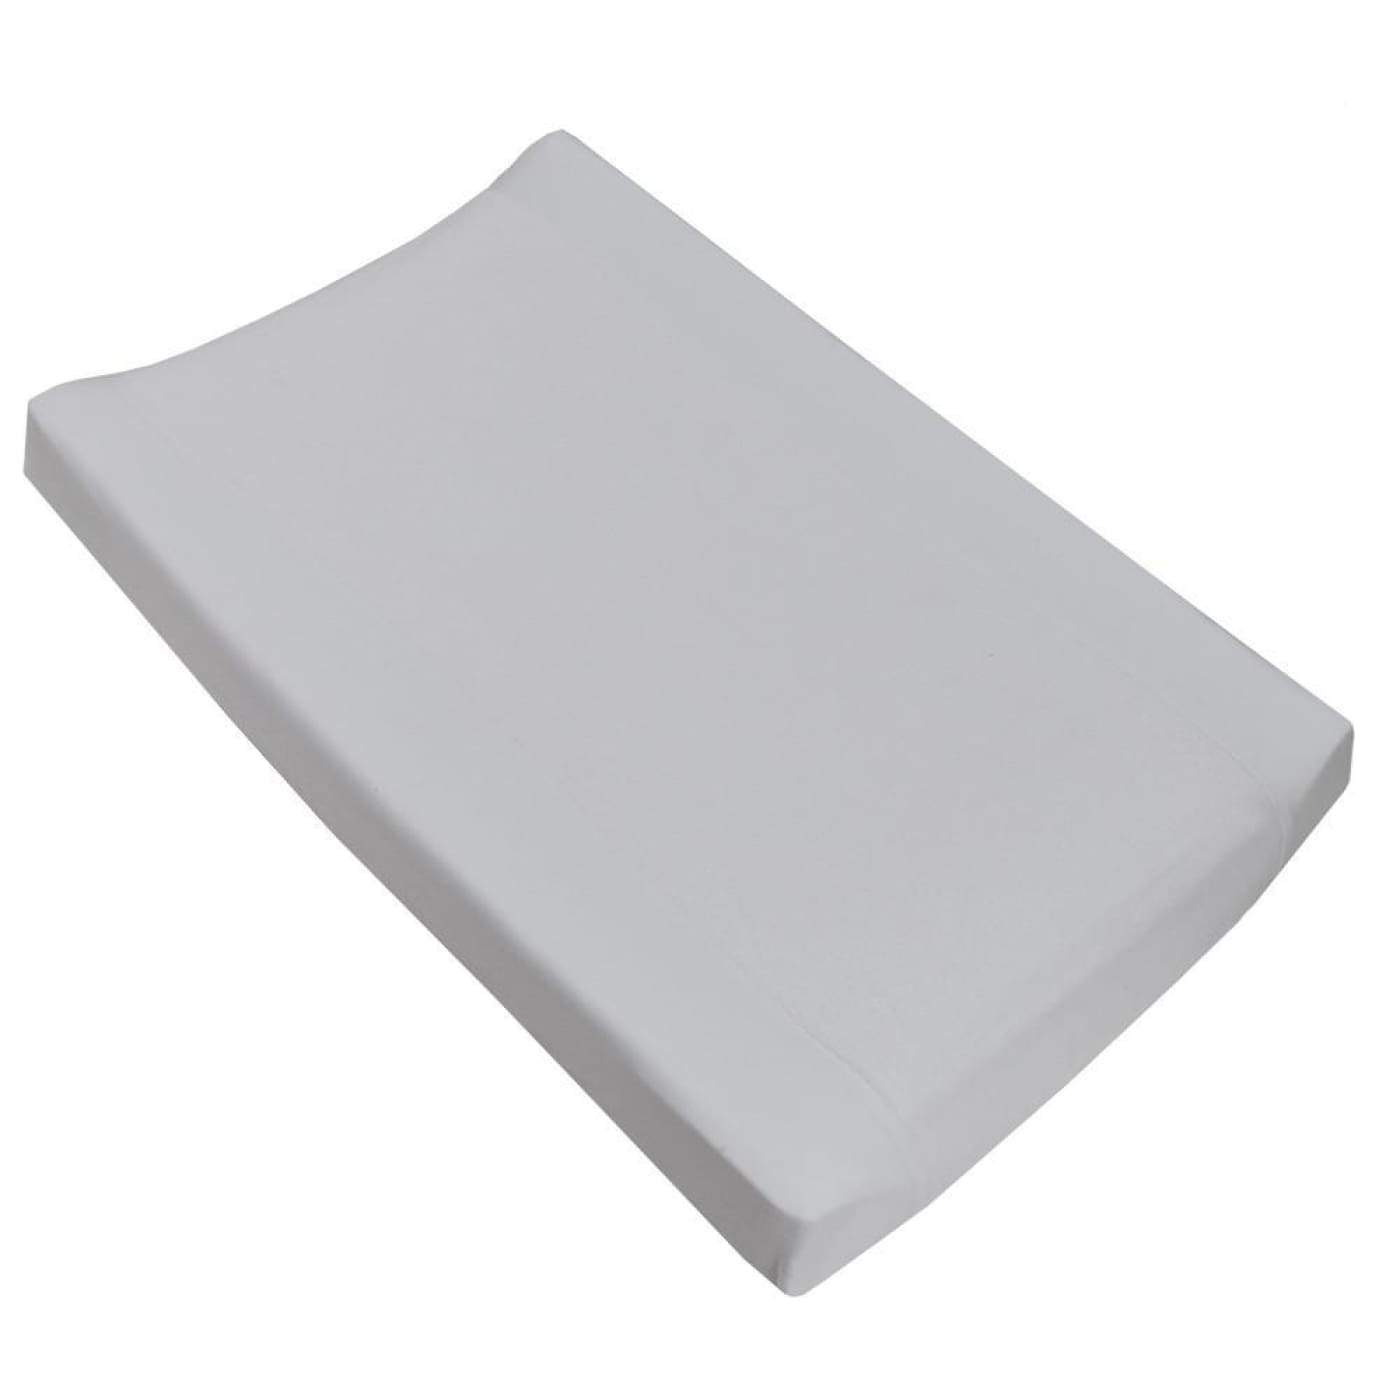 Living Textiles Change Pad Cover Jersey/Towelling - White - BATHTIME & CHANGING - CHANGE MATS/COVERS